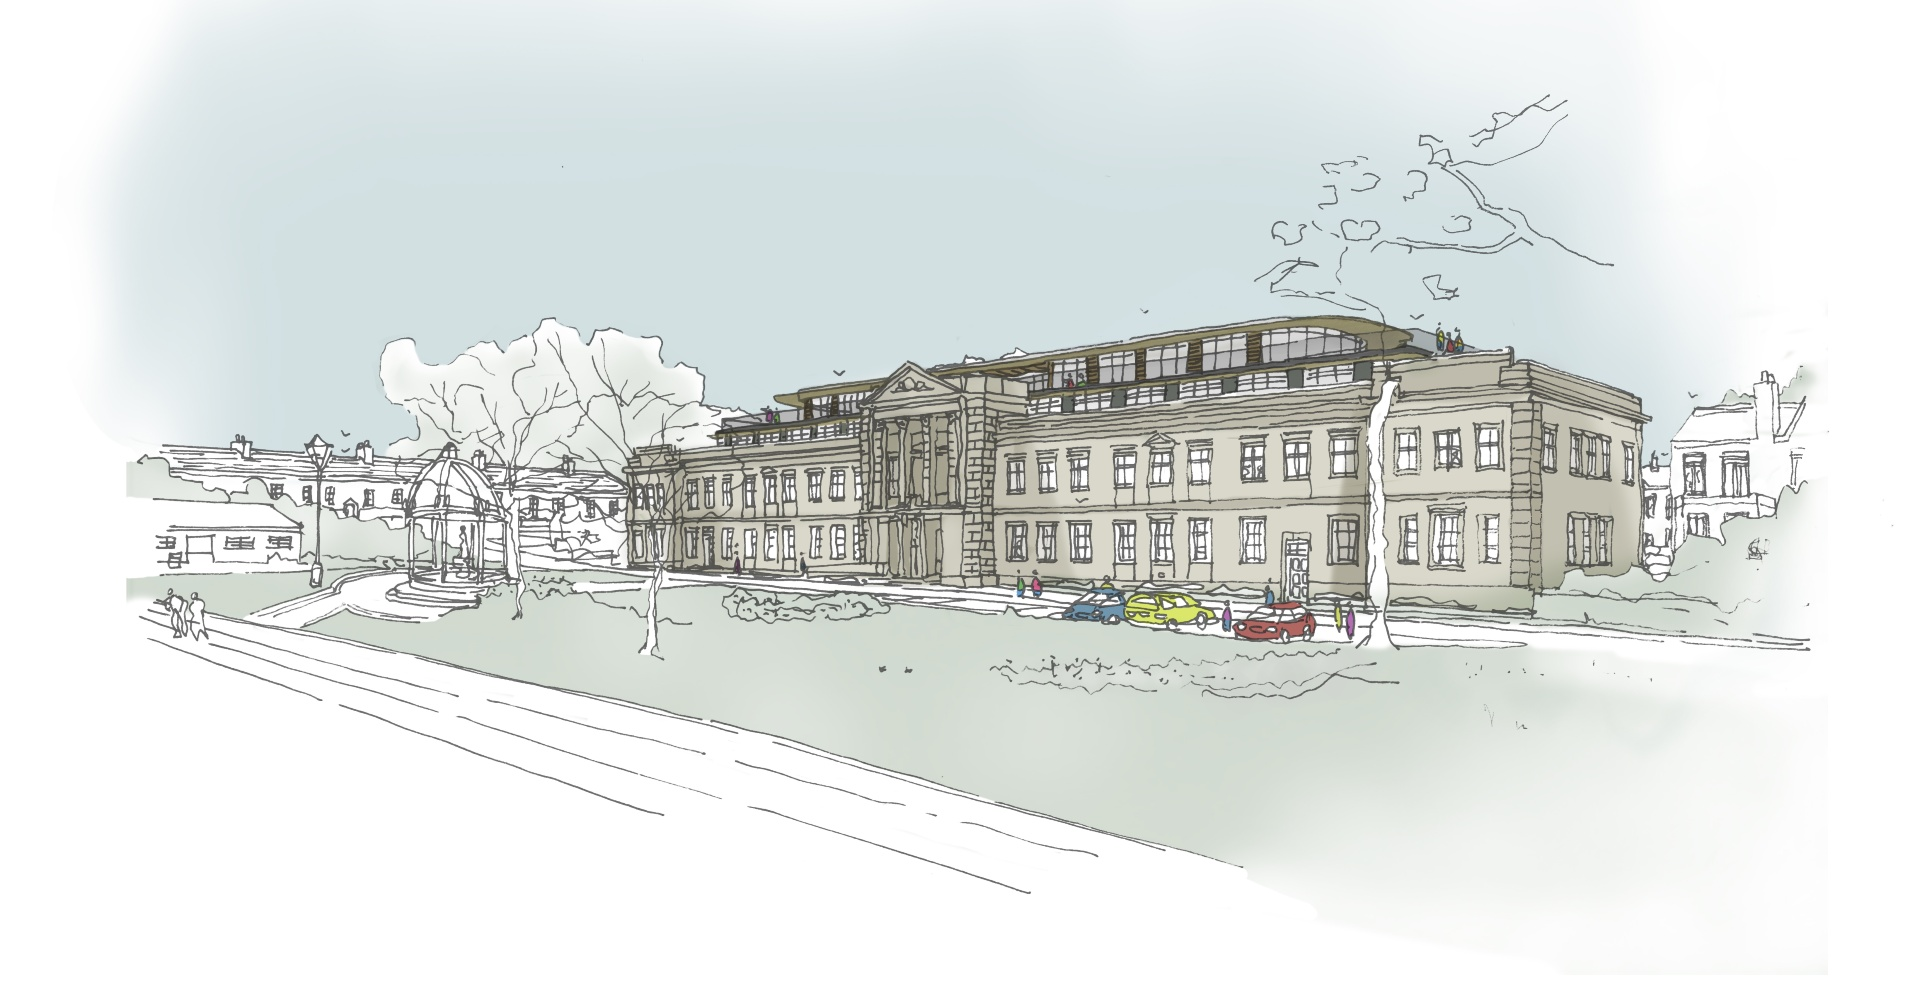 Consultation opens over plans to extend former council offices